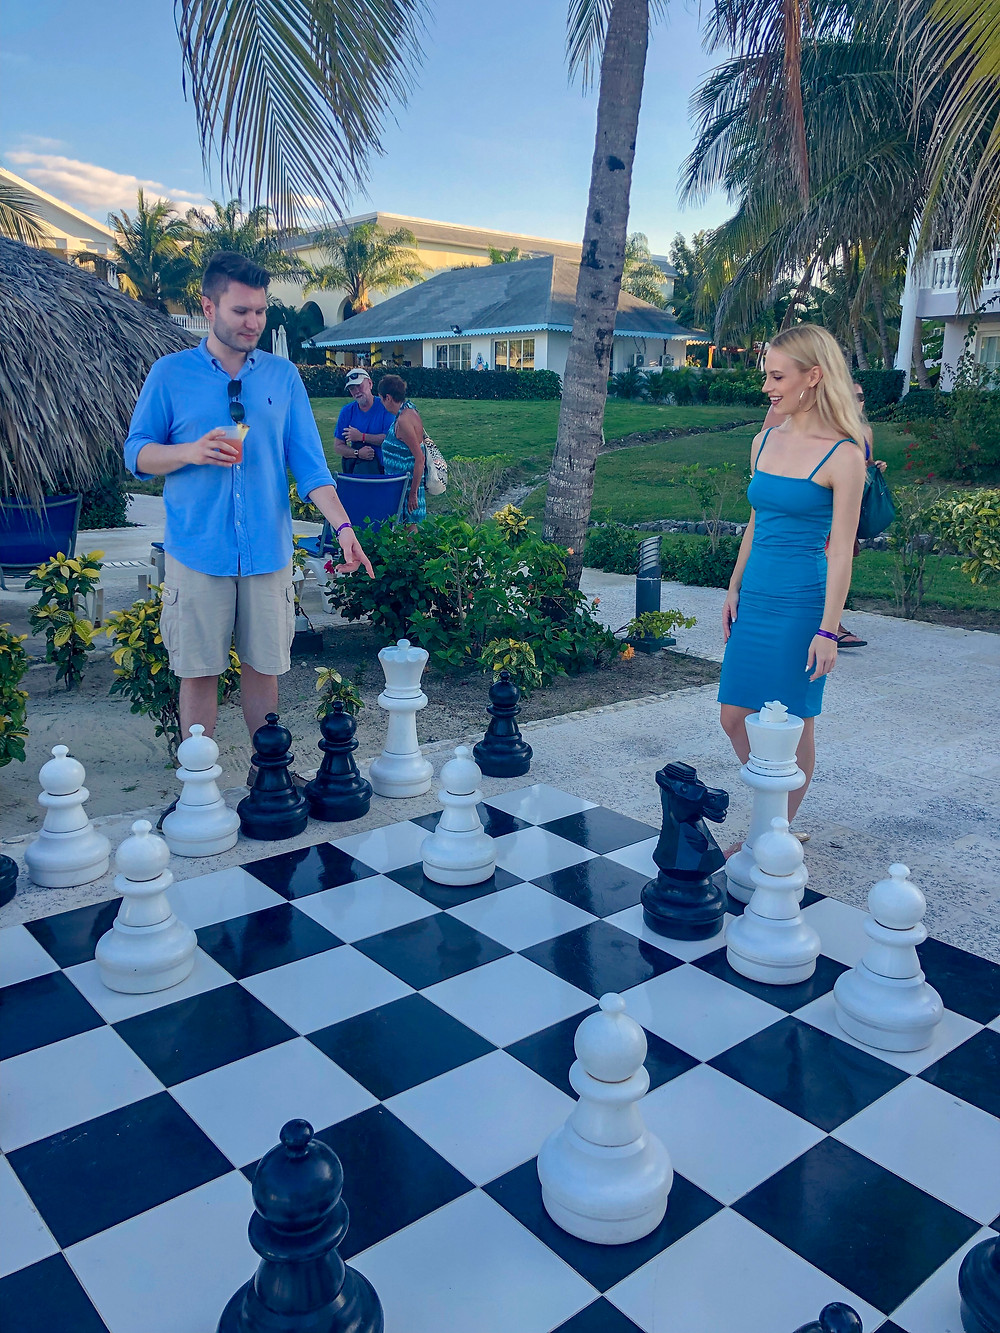 Playing Chess at the Grand Palladium Resort & Spa